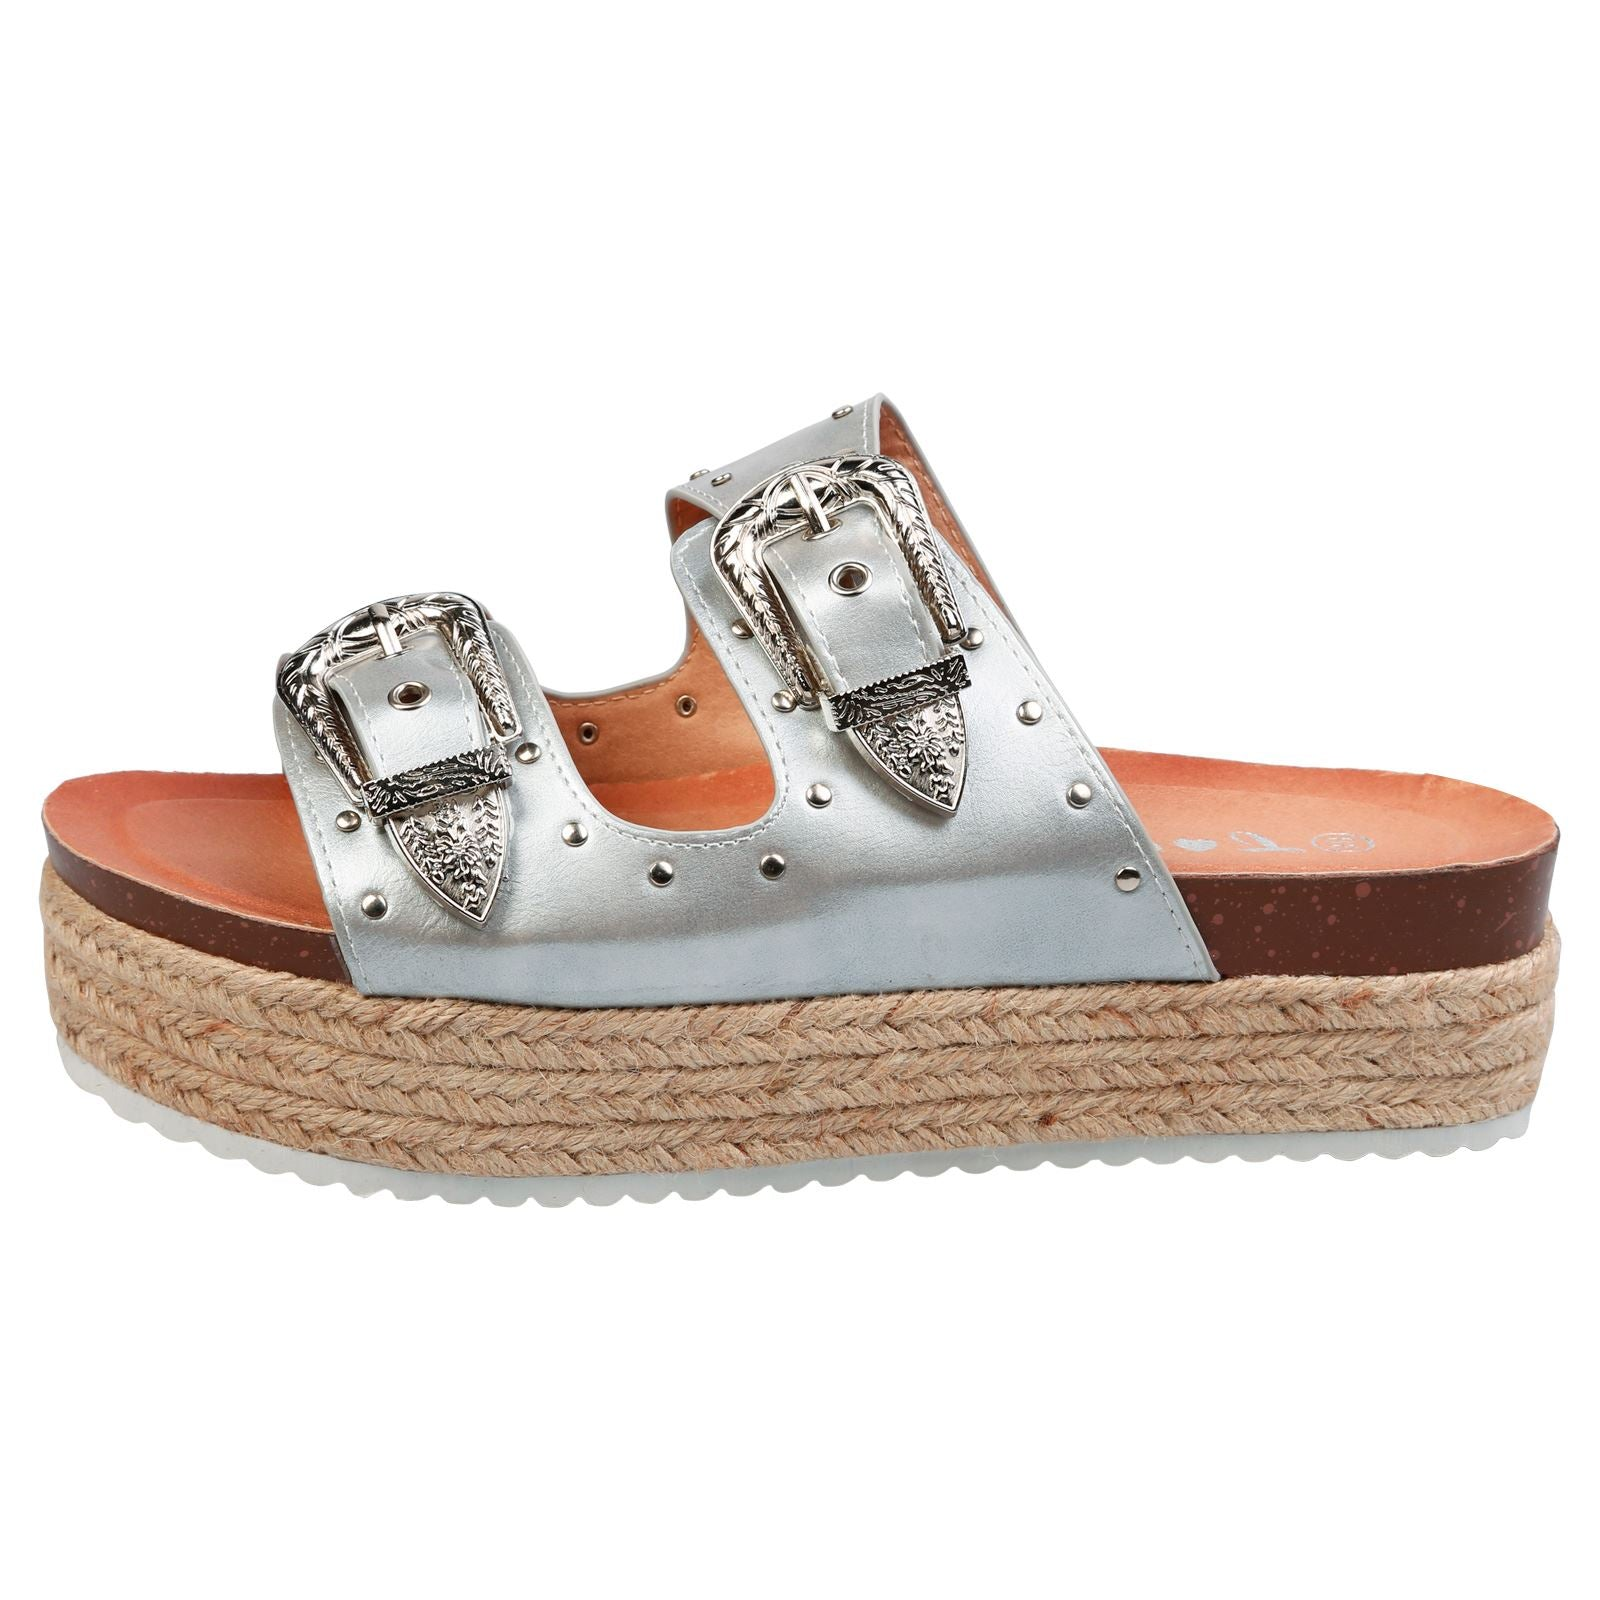 Gianna Buckle Detail Flatform Espadrille Sliders in Silver Faux Leather